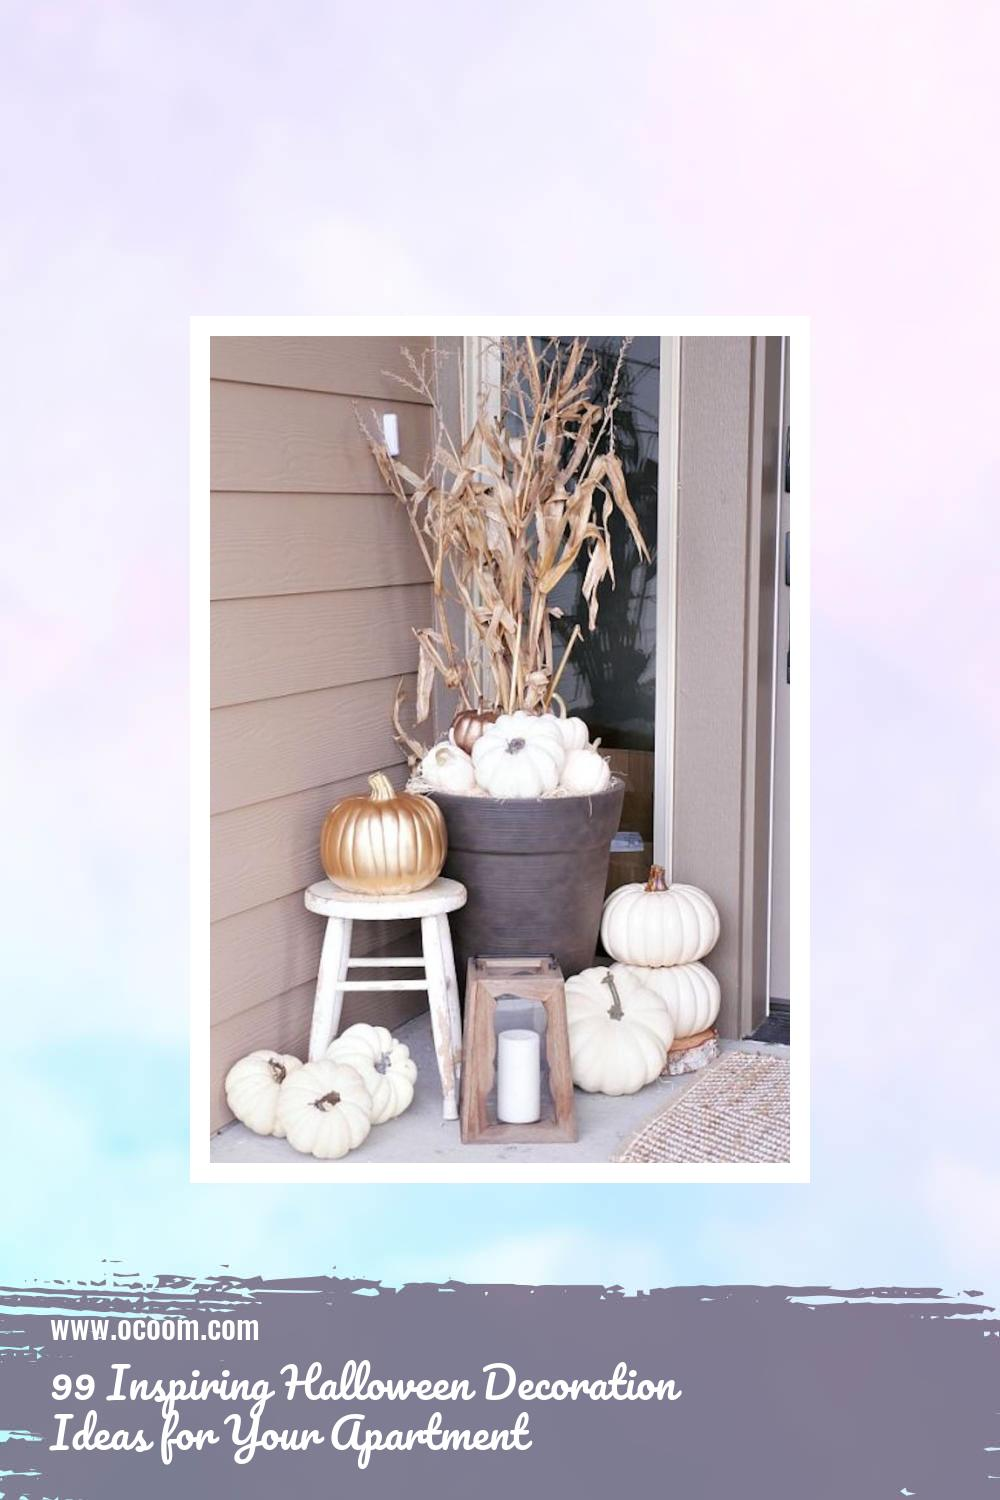 99 Inspiring Halloween Decoration Ideas for Your Apartment 61